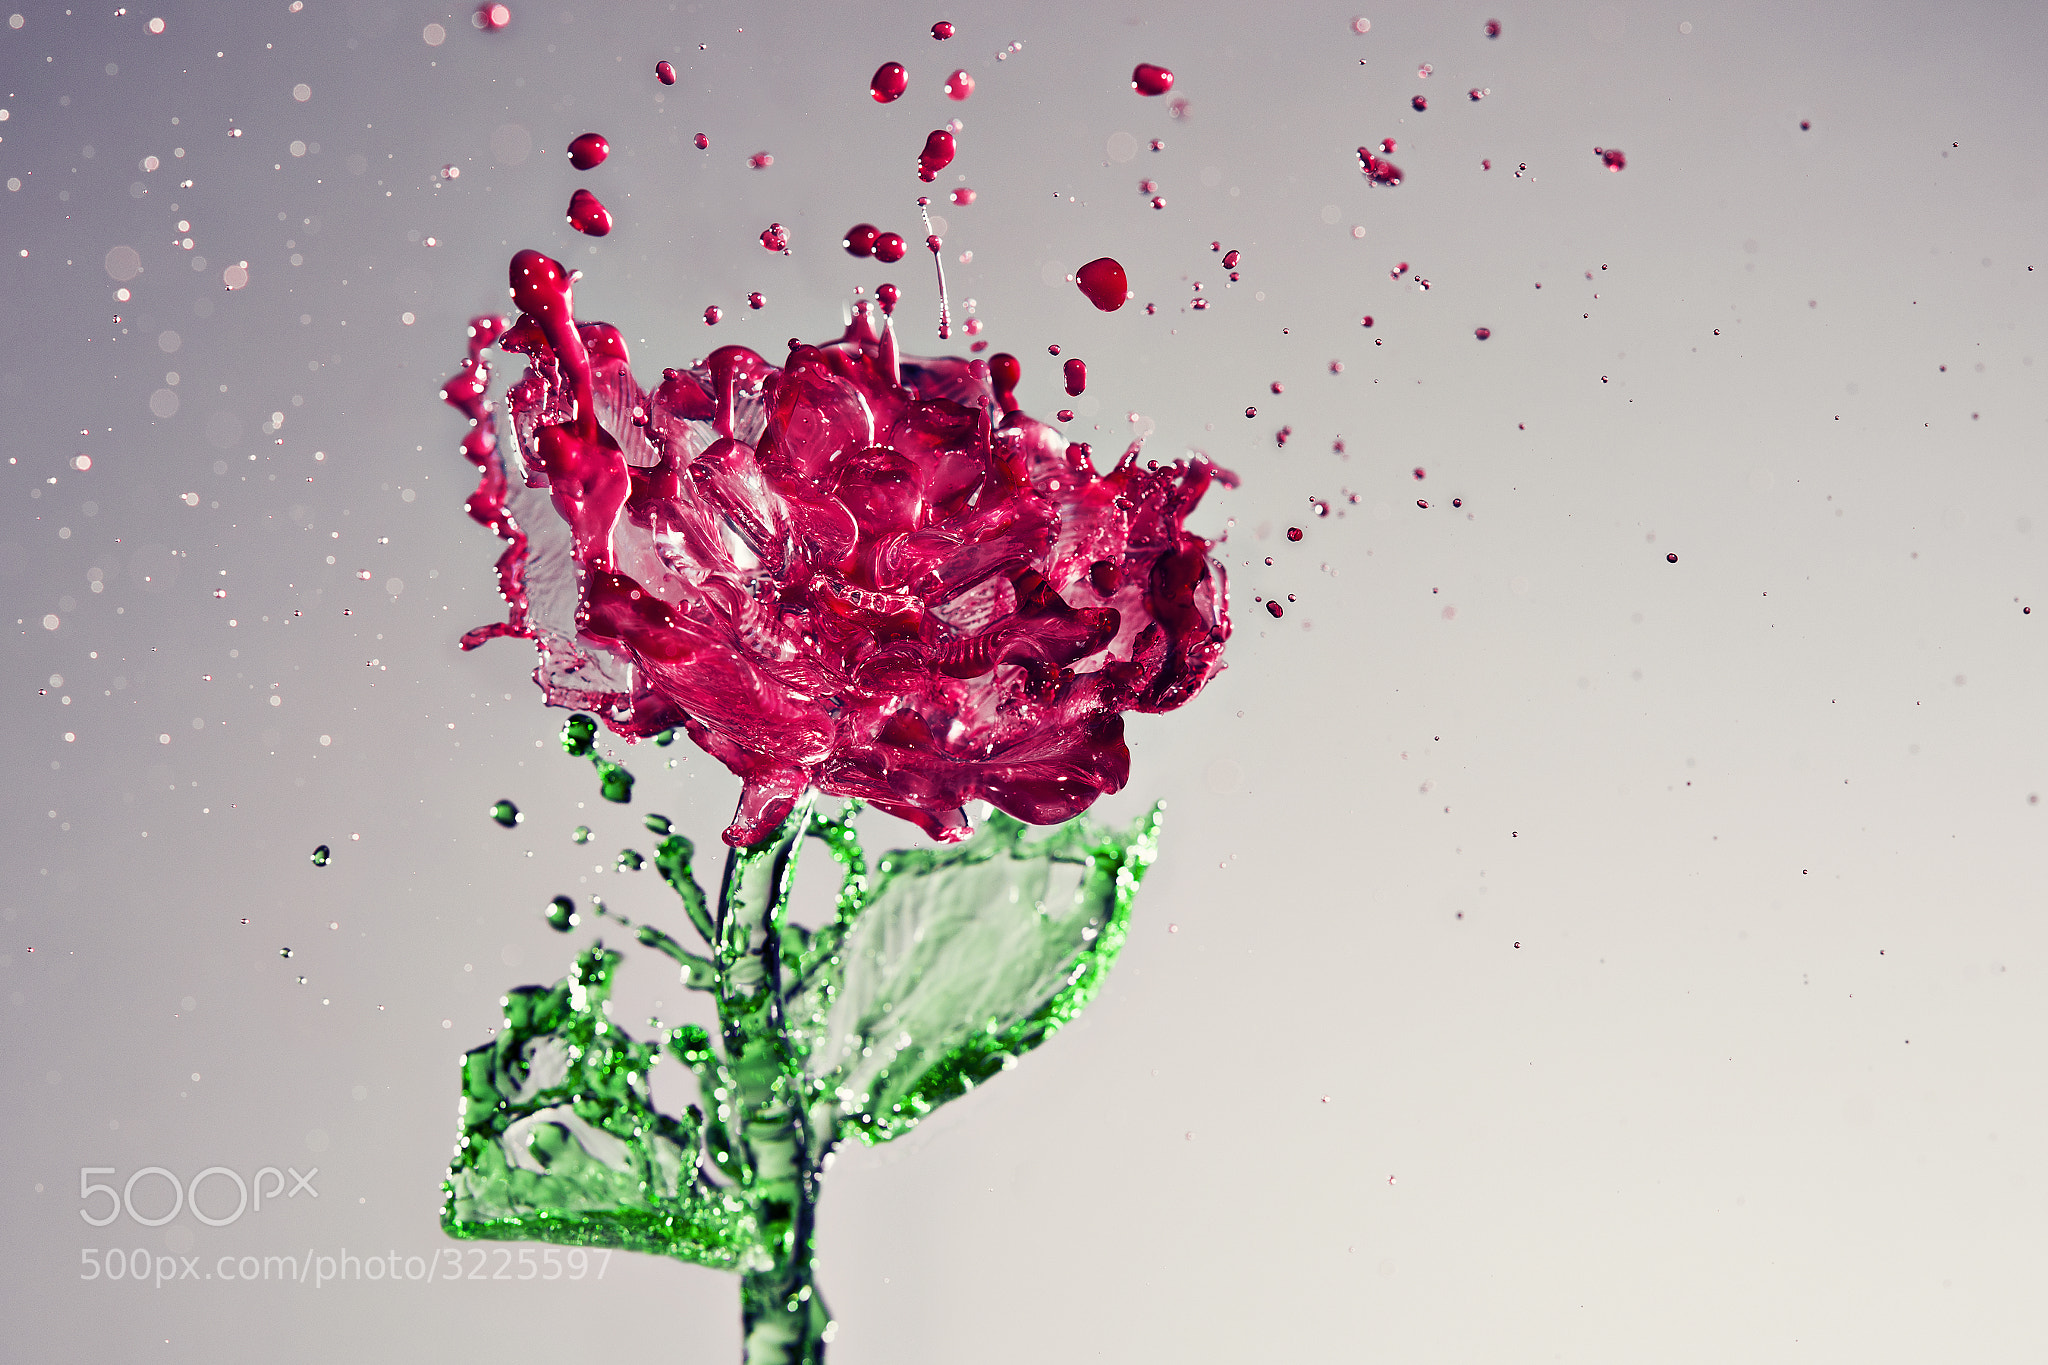 Photograph A Splash of Rose by Anthony Chang on 500px